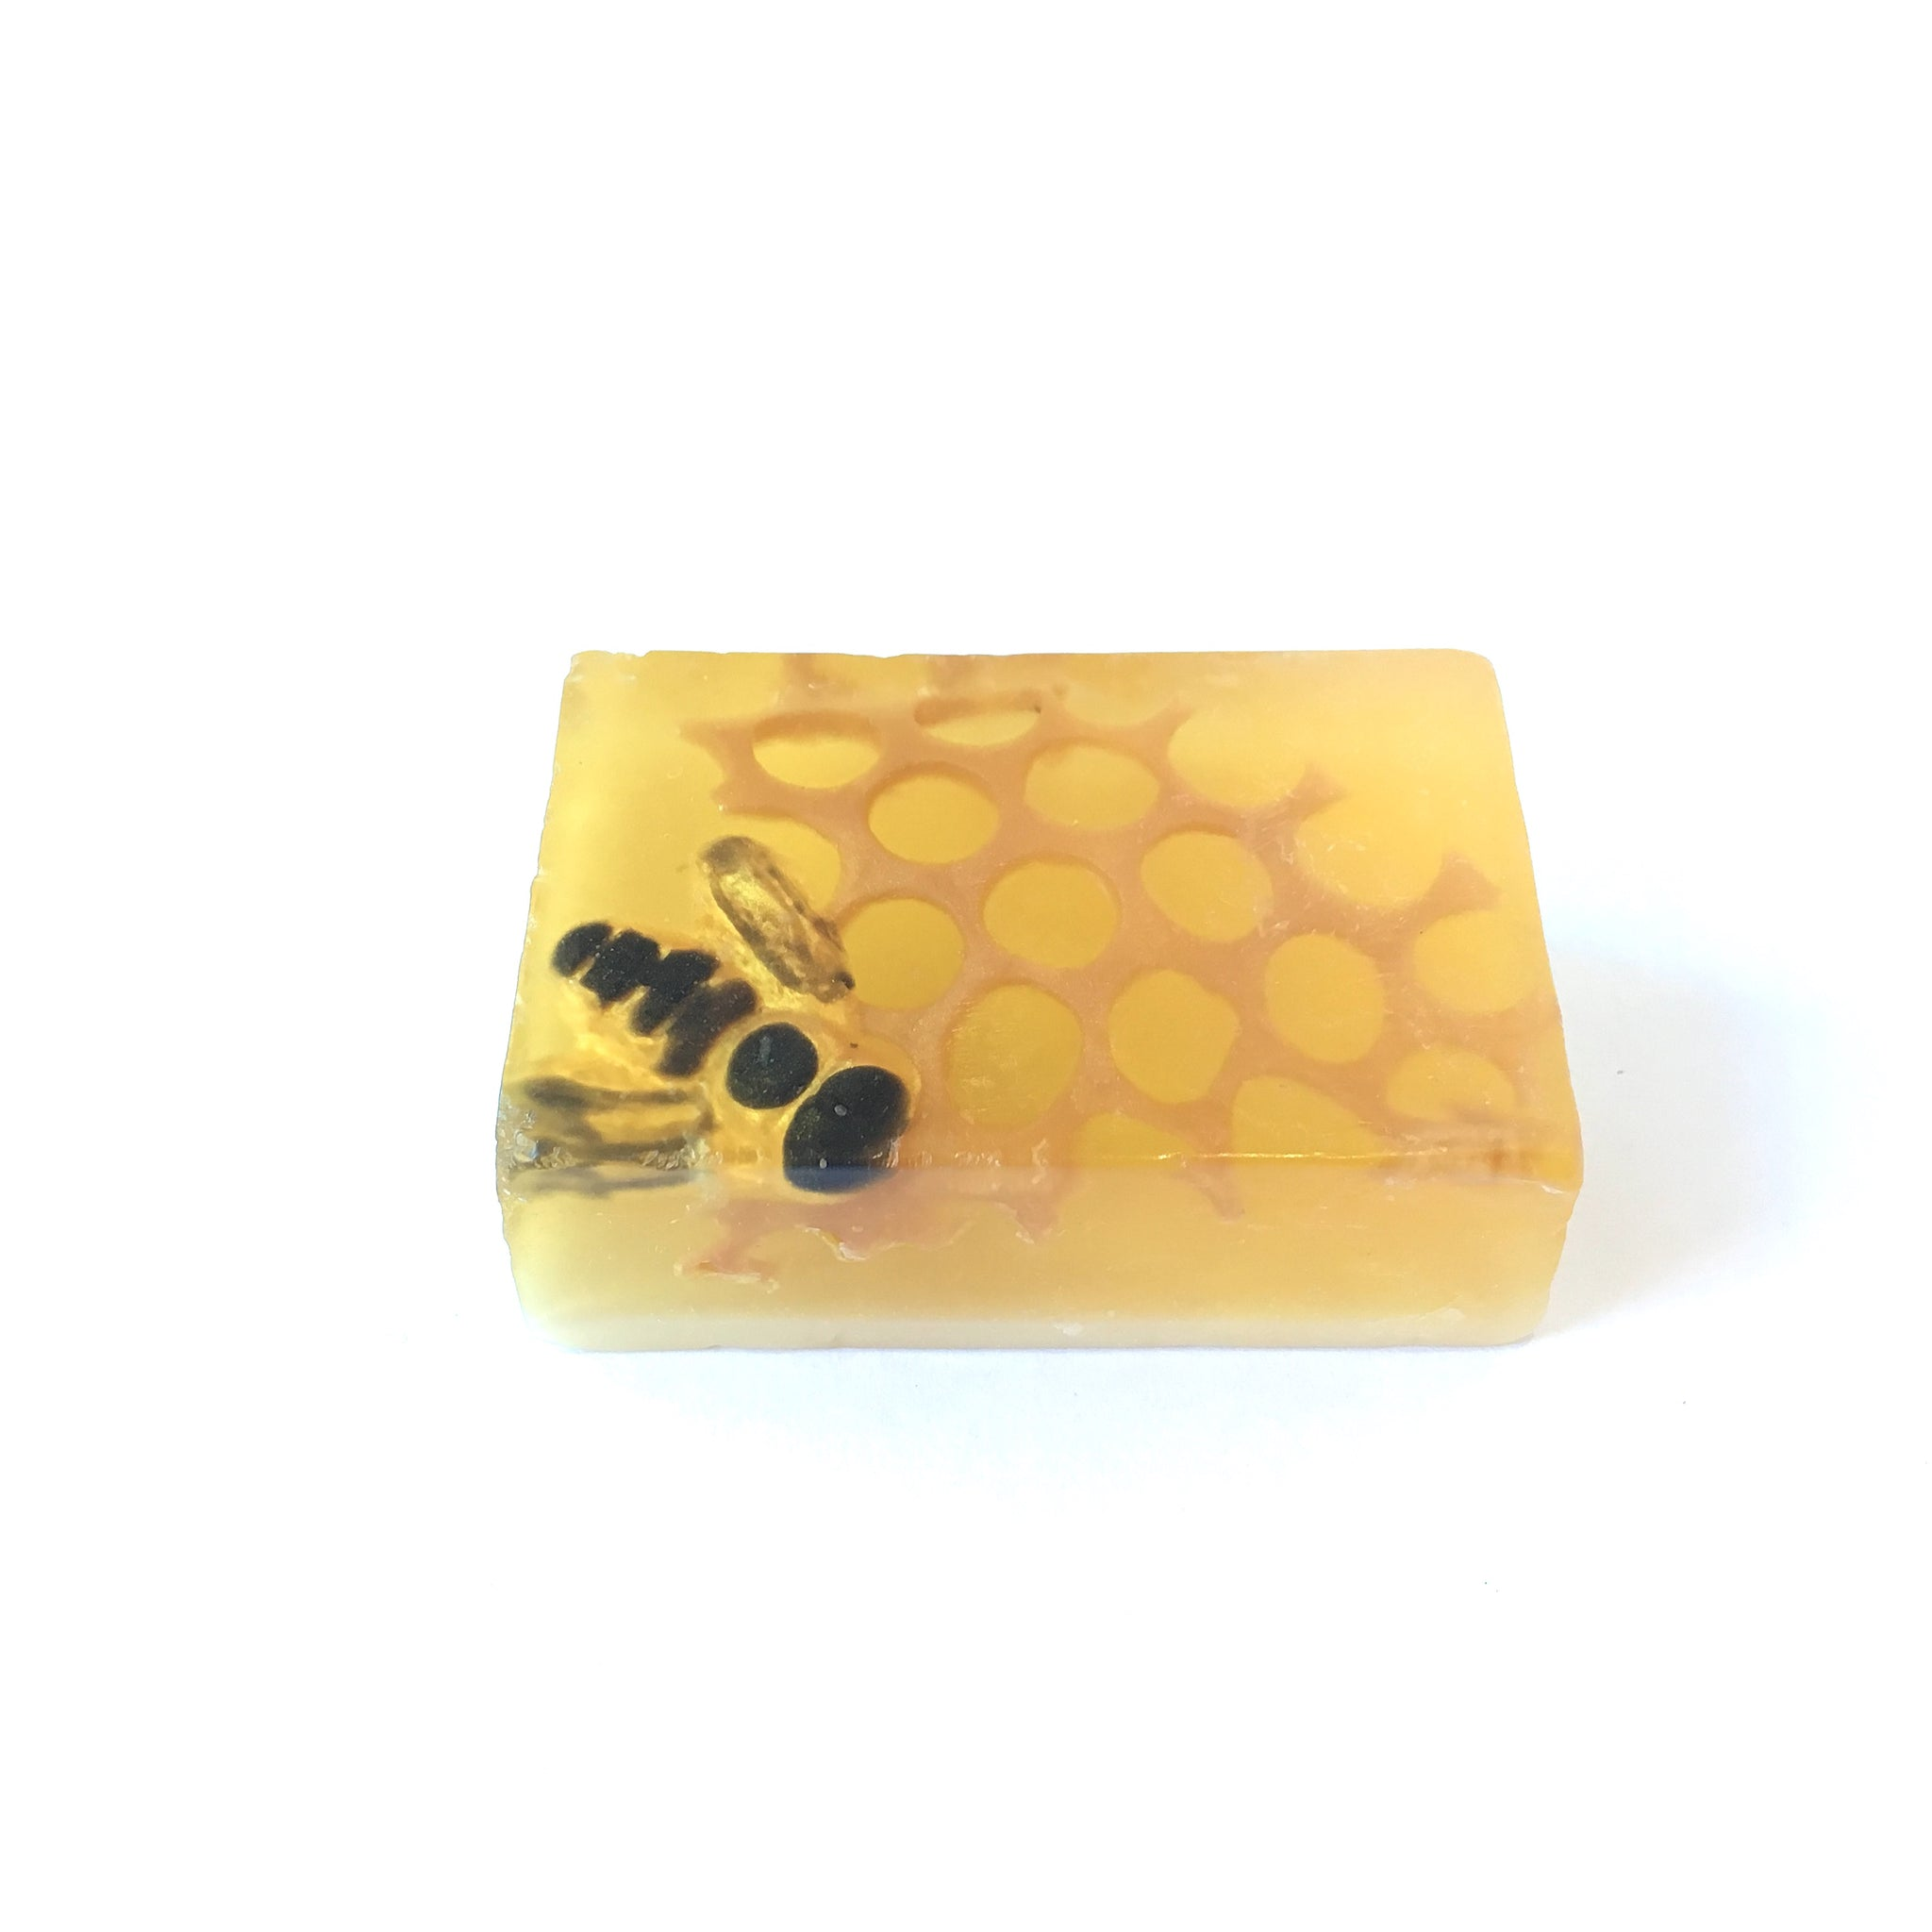 Cleanse - Inner Nature Bee Golden Soap